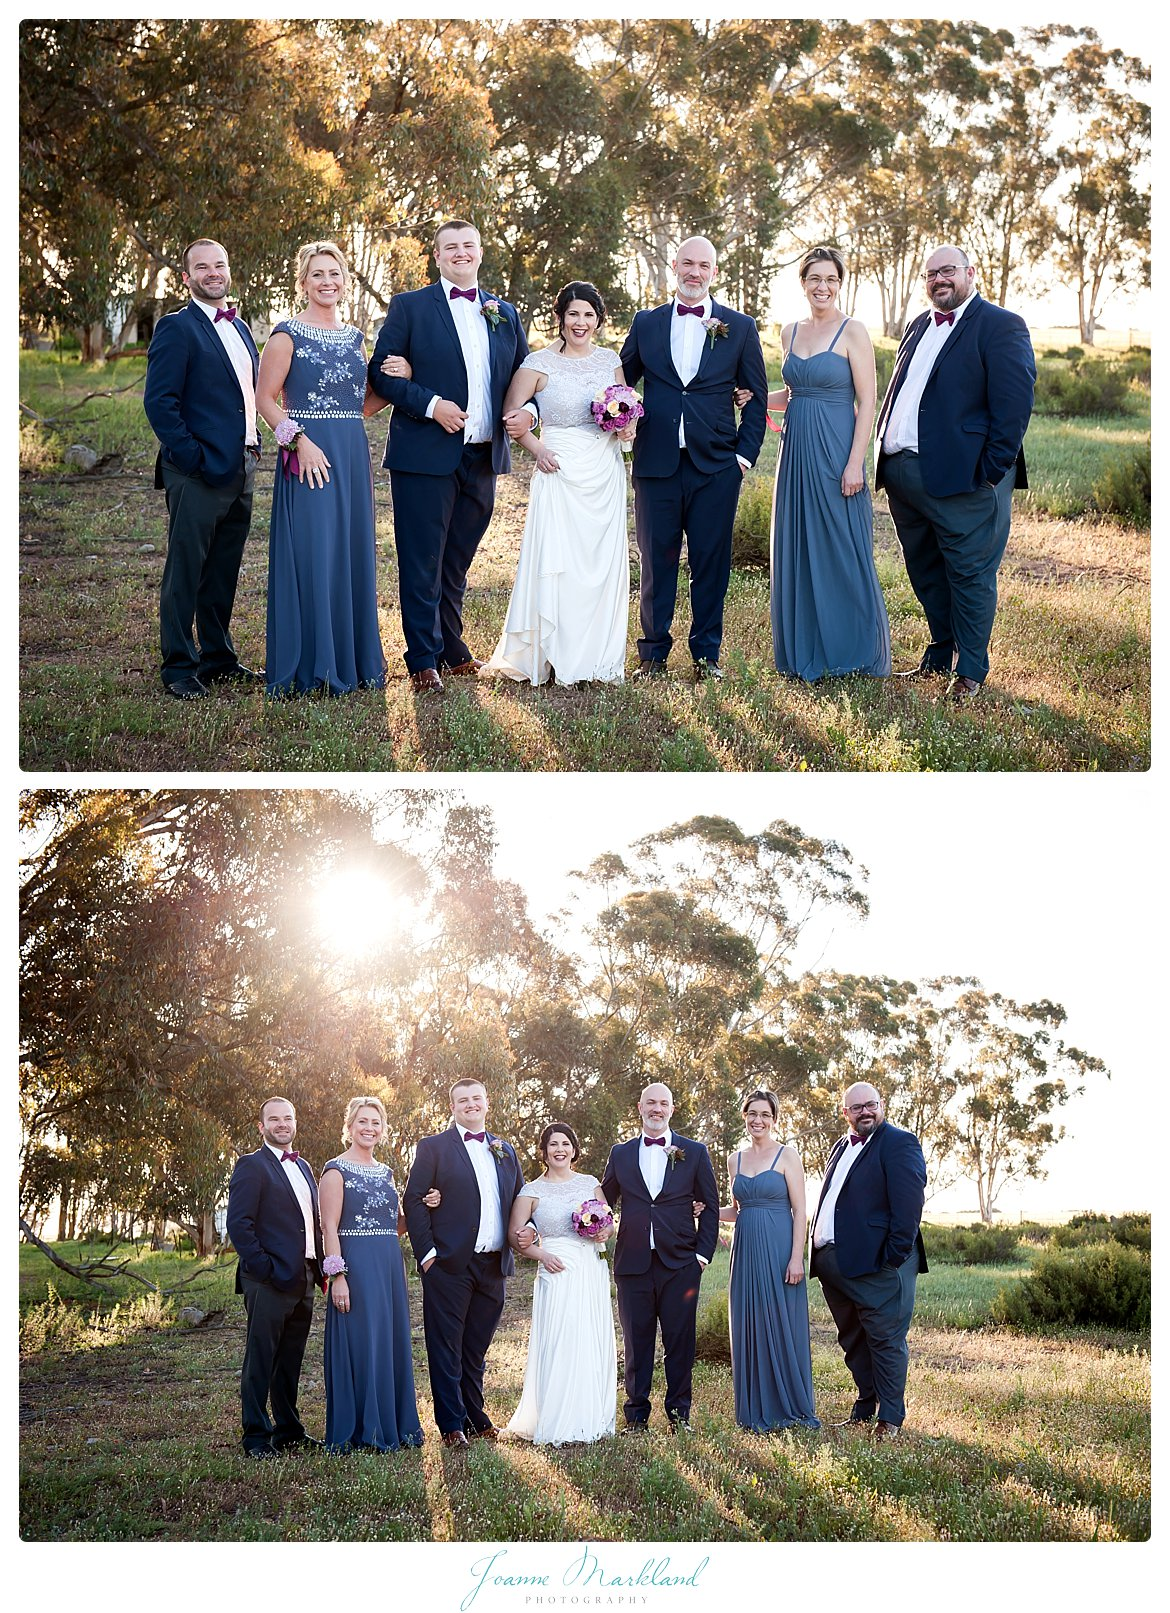 boorwater-wedding-hopefield-west-coast-cape-town-joanne-markland-photography-033